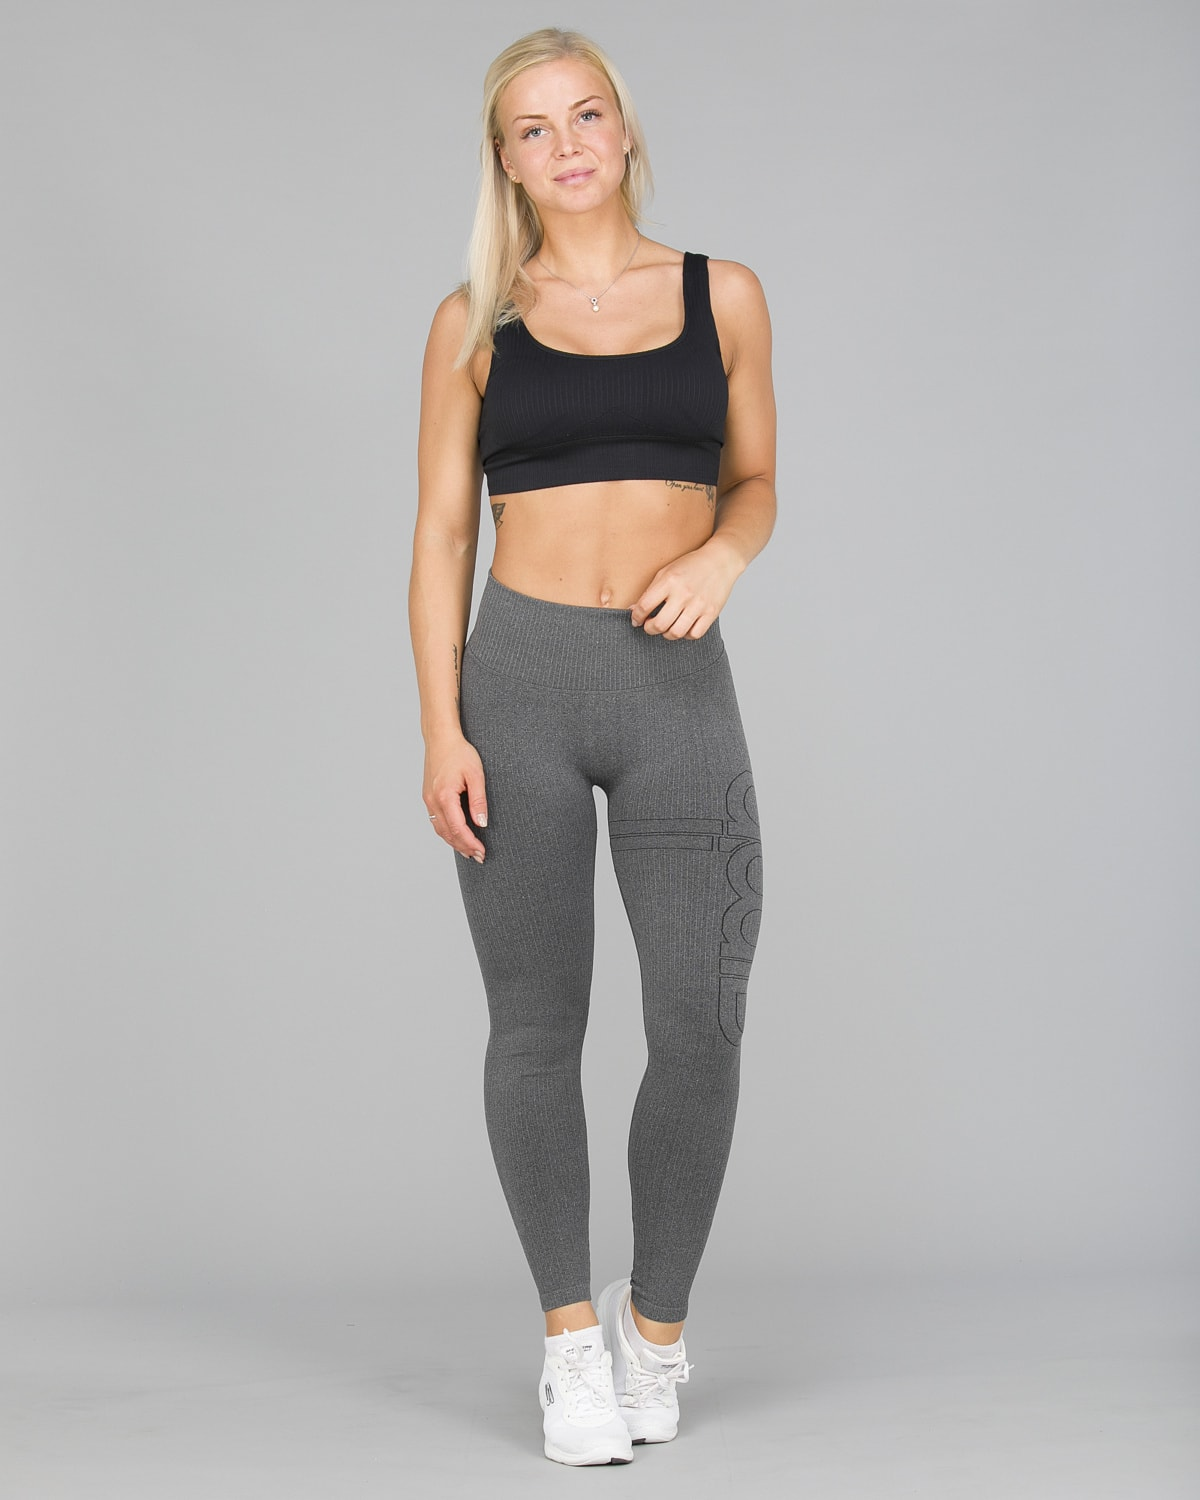 Aim'n Grey Ribbed Seamless Tights5